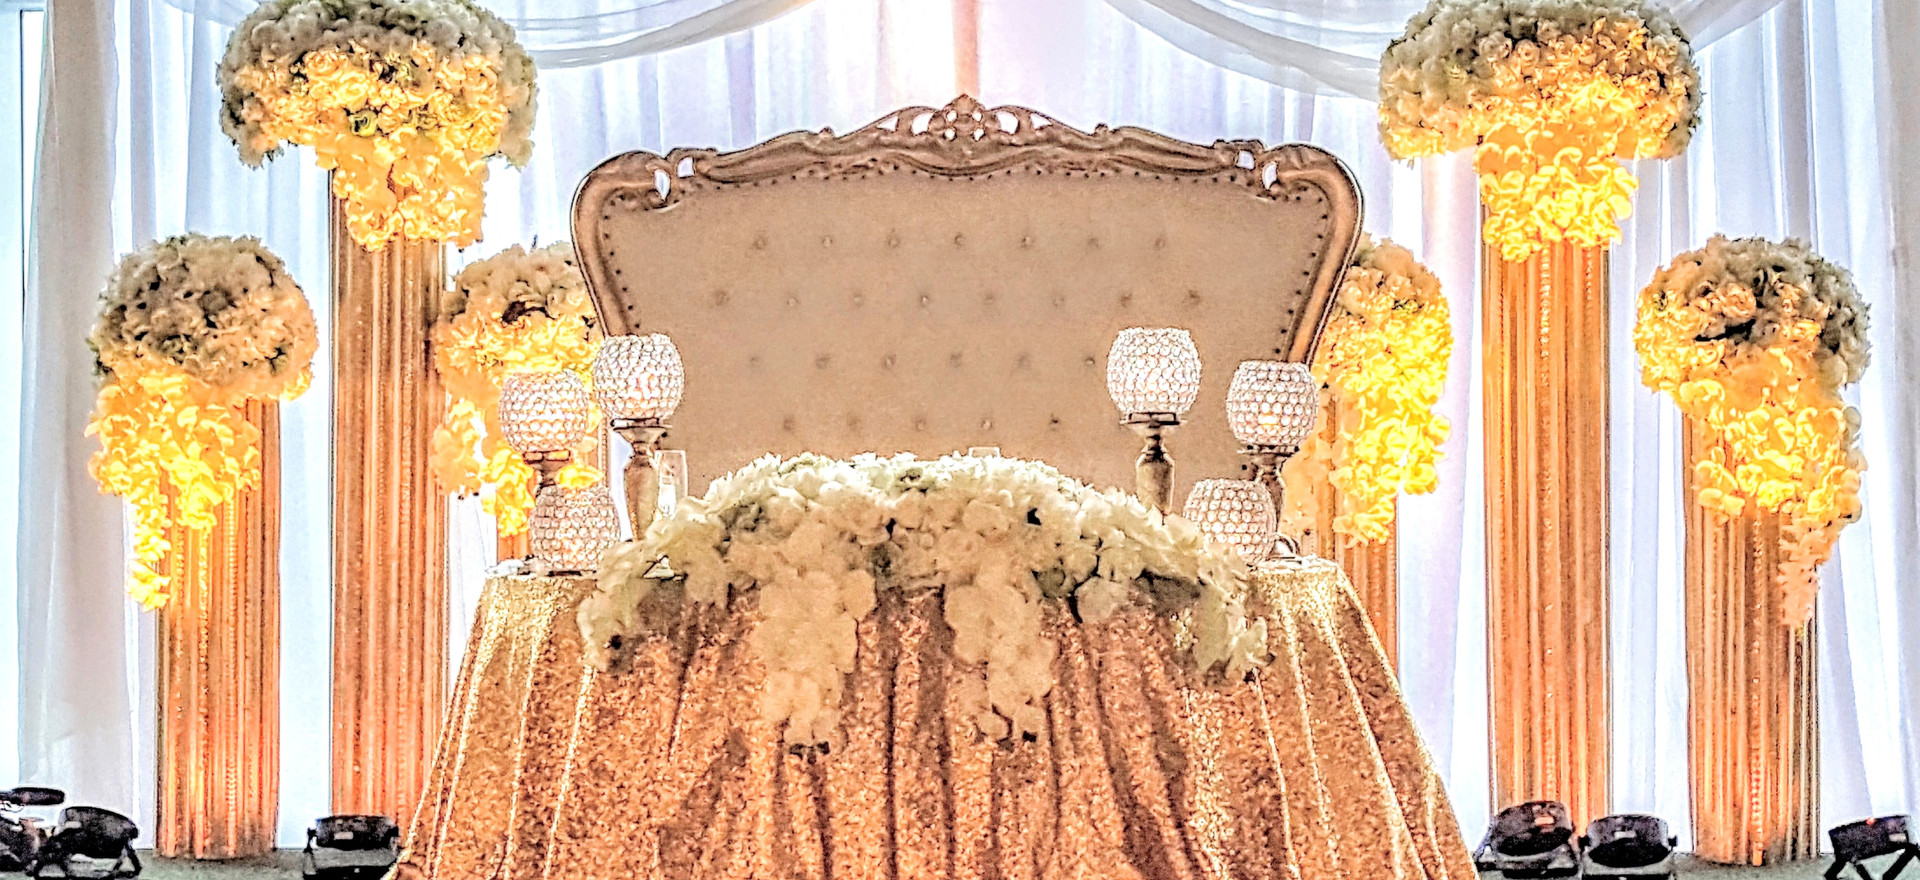 plain draping with 6 gold pillars